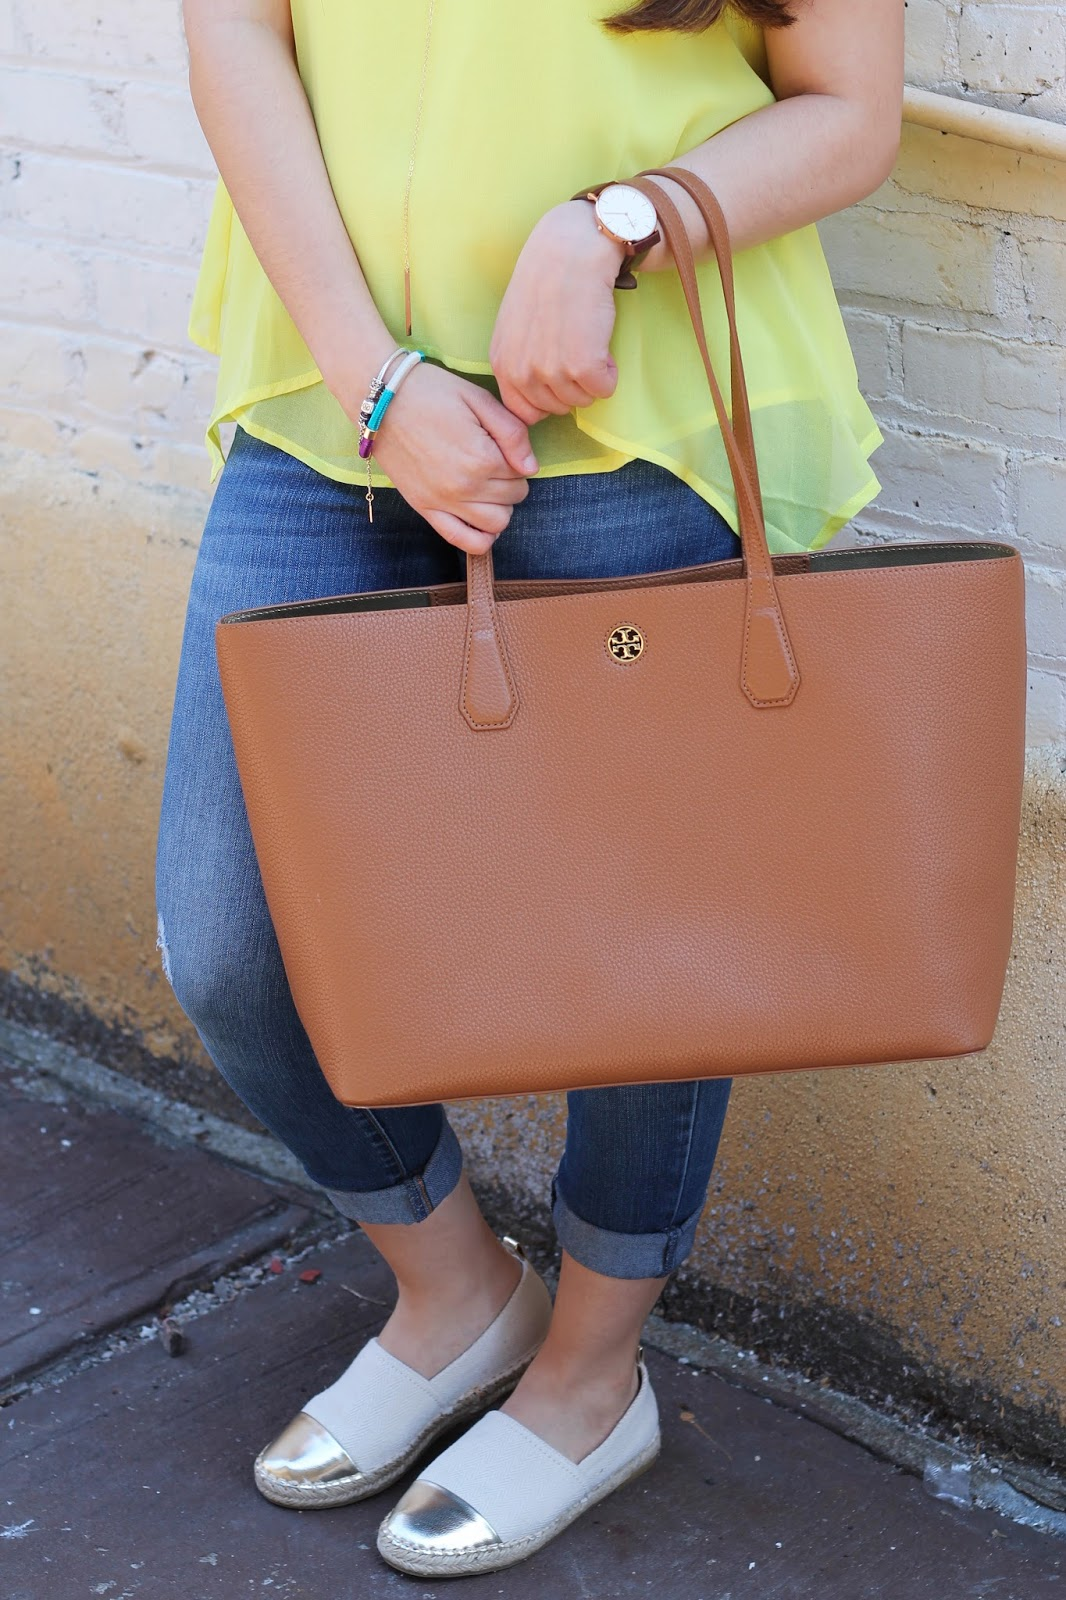 tory burch, oldnavy, marshalls, daniel wellington, fabfound, zara, espadrilles, summer, spring, distressed jeans, nordstrom, yellow, perry leather tote, nordstrom , blogger, , fashion blogger, spring fashion, personalstyle,